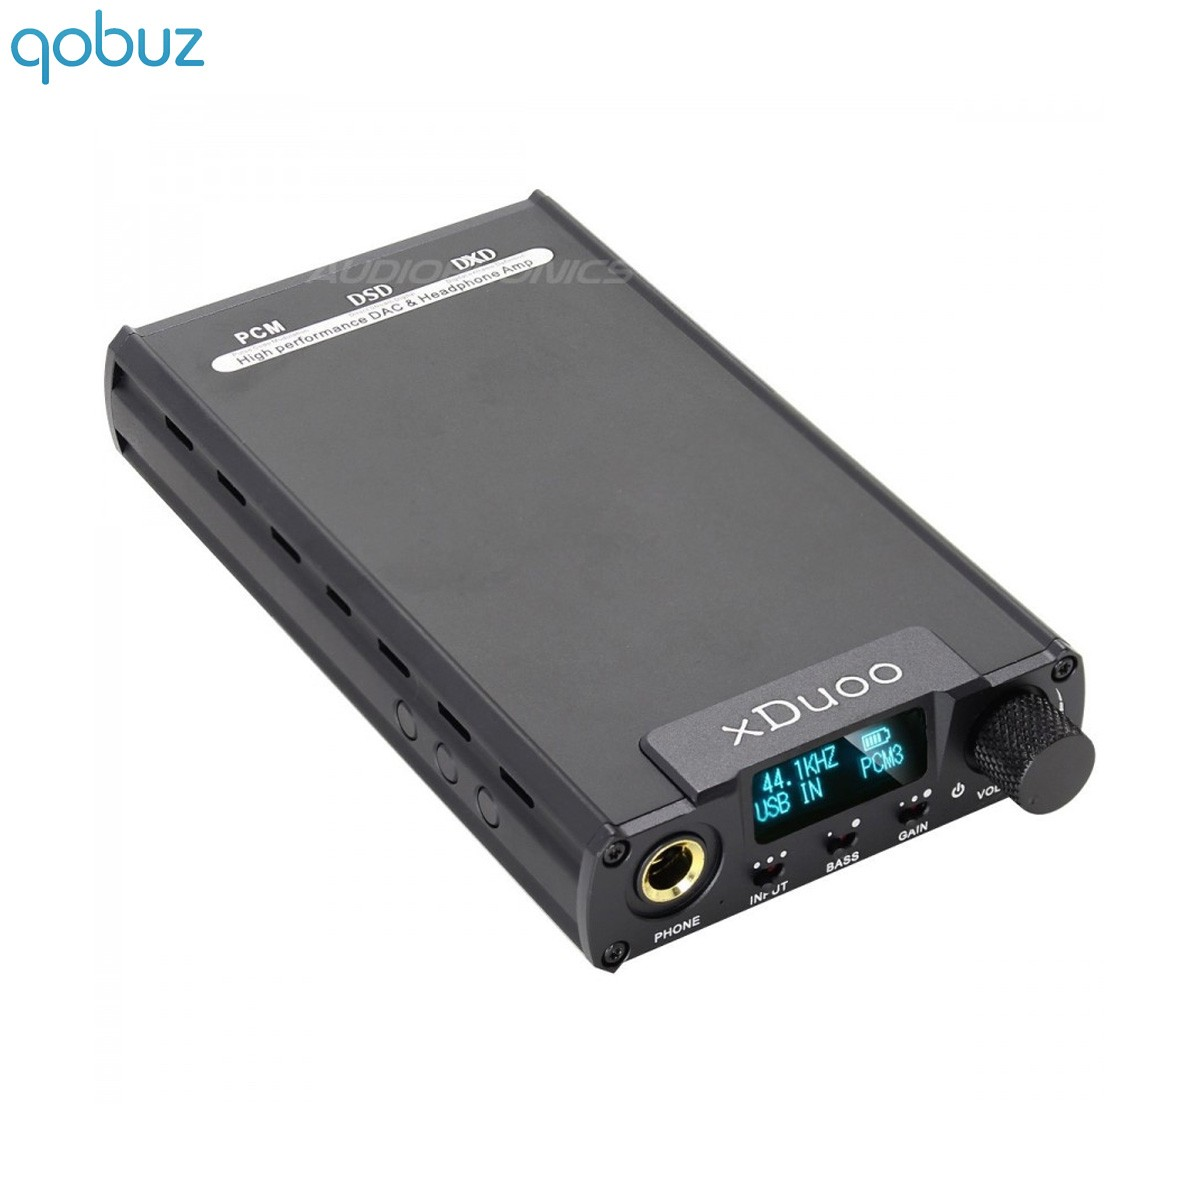 XDUOO XD-05 nomad battery 32Bit DAC AK4490 / Headphone Amp iOS AndroidDSD Black